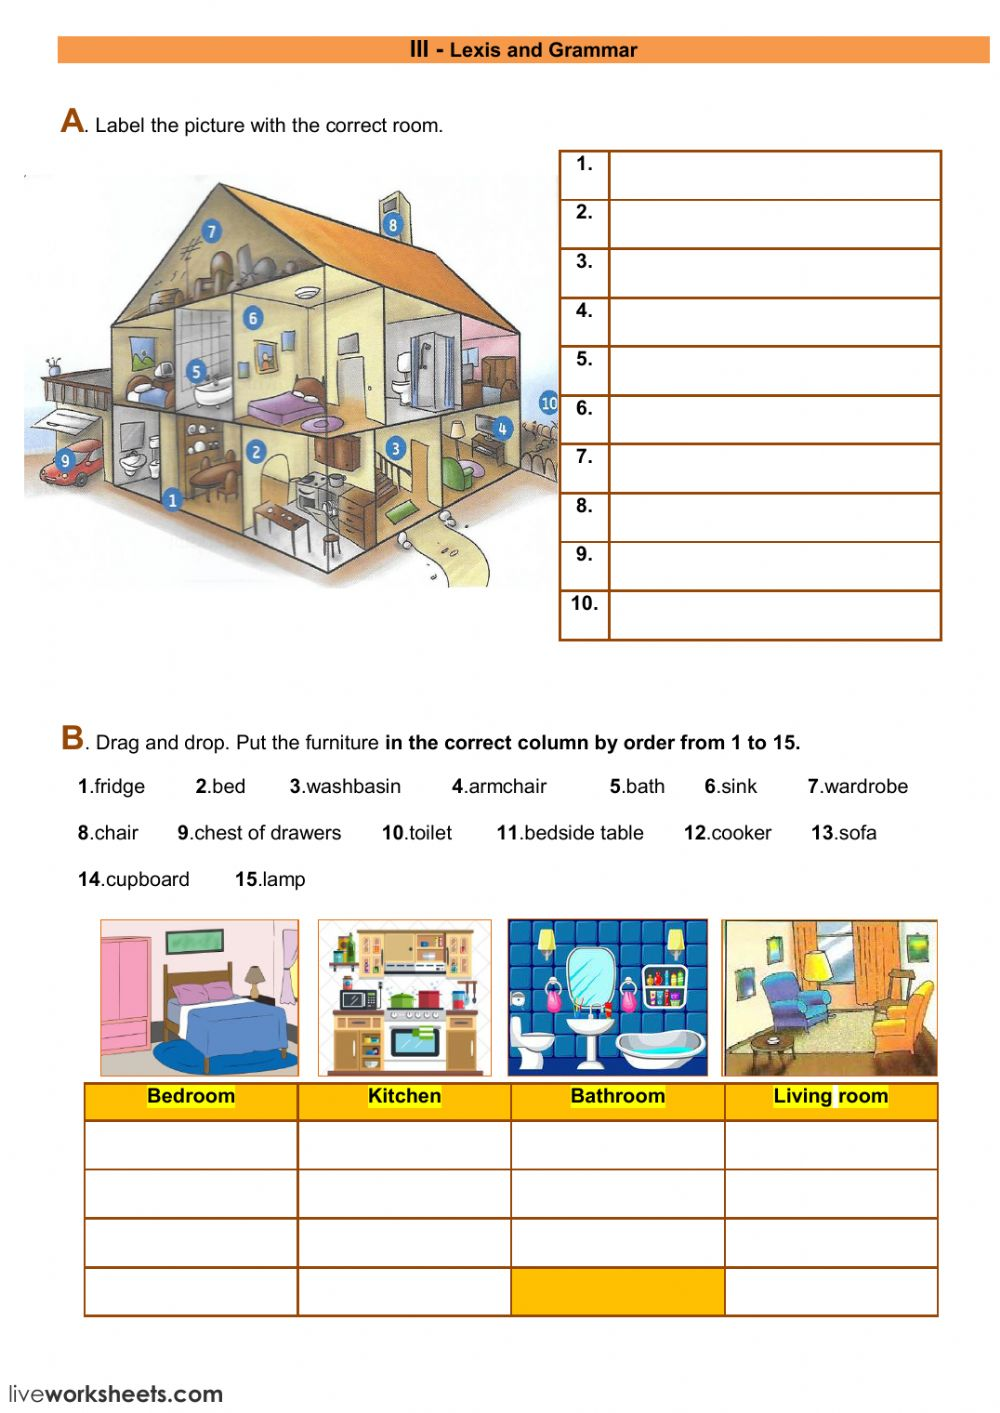 medium resolution of Lexis and grammar - the house worksheet